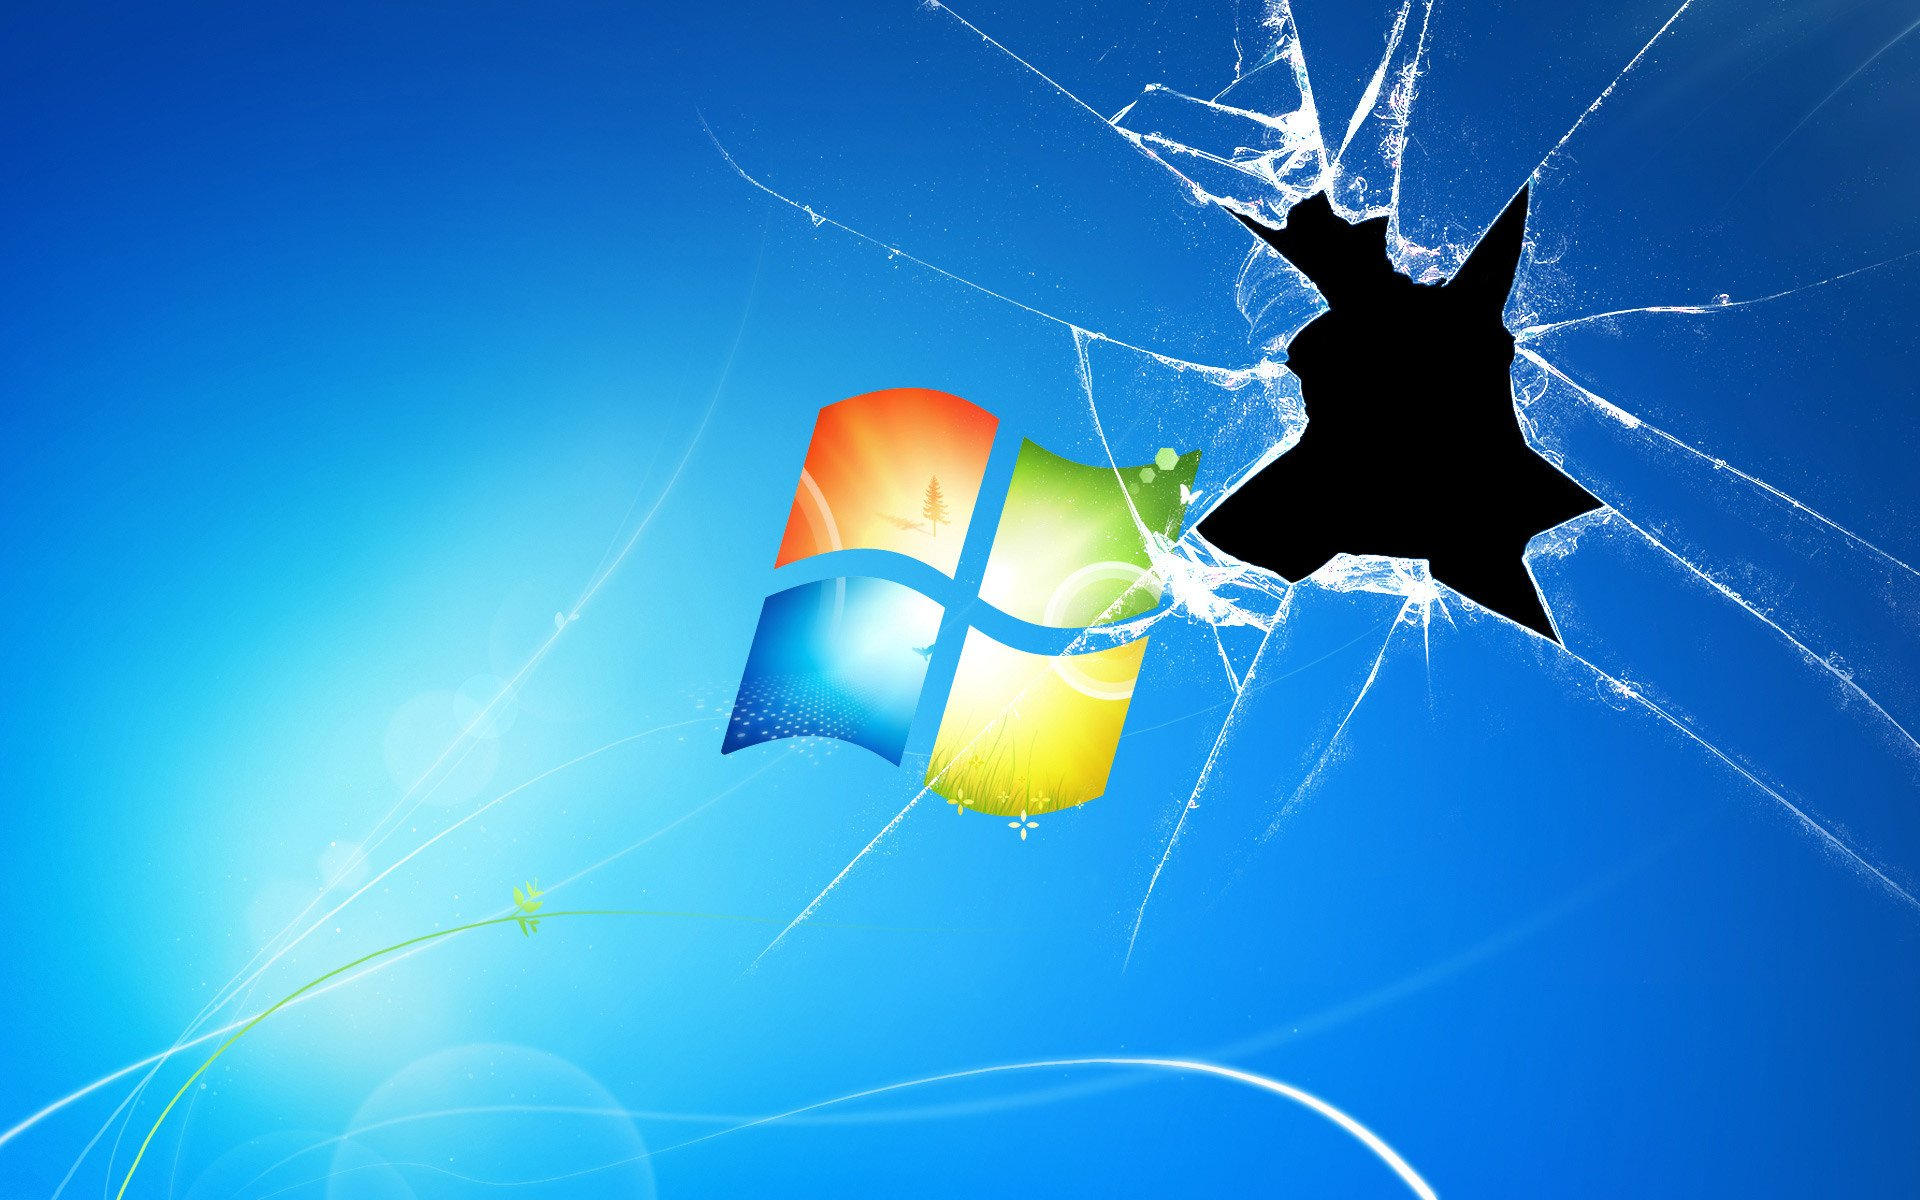 13 Cracked Screen HD Wallpapers | Backgrounds - Wallpaper Abyss